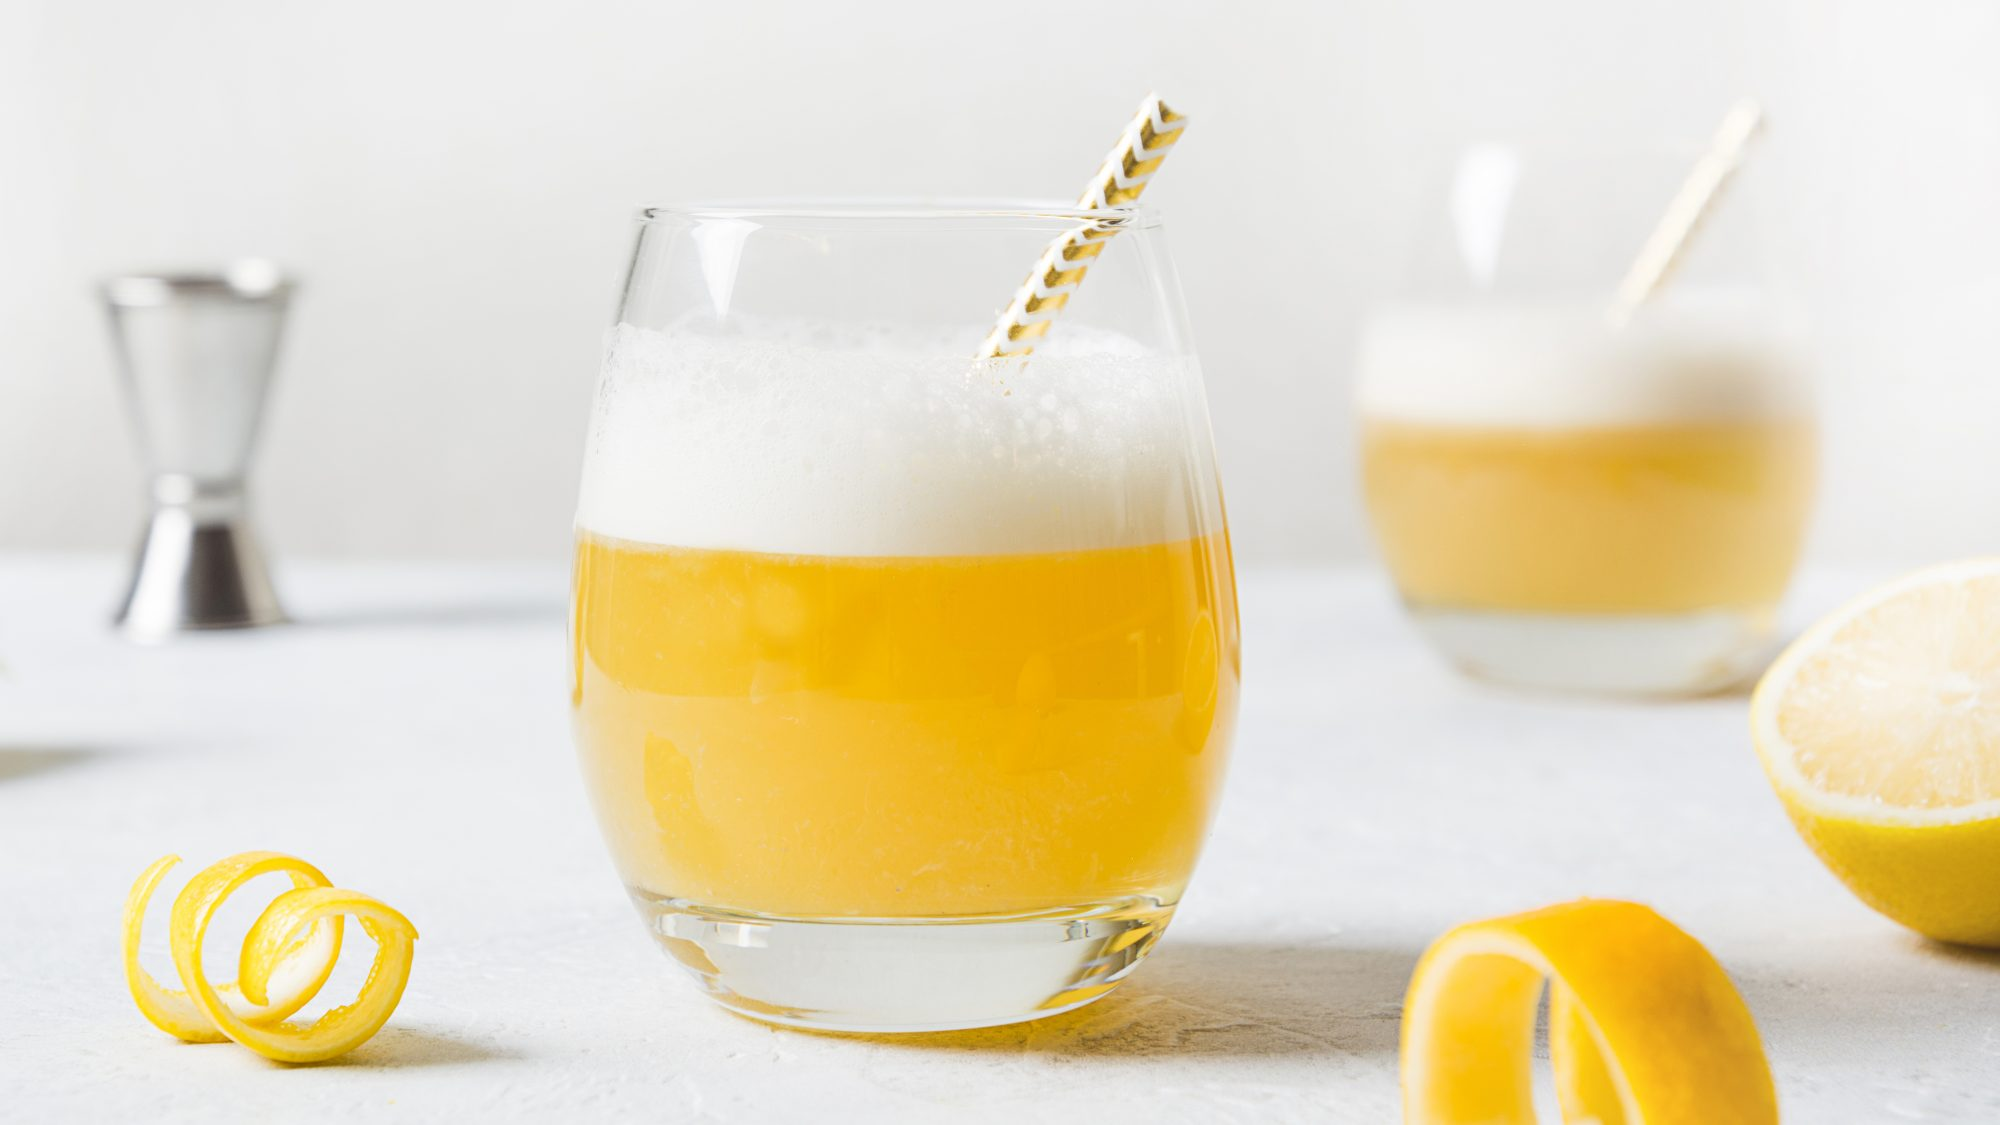 This Whiskey Sour Cocktail Is the Ideal Way to Celebrate the Start of September